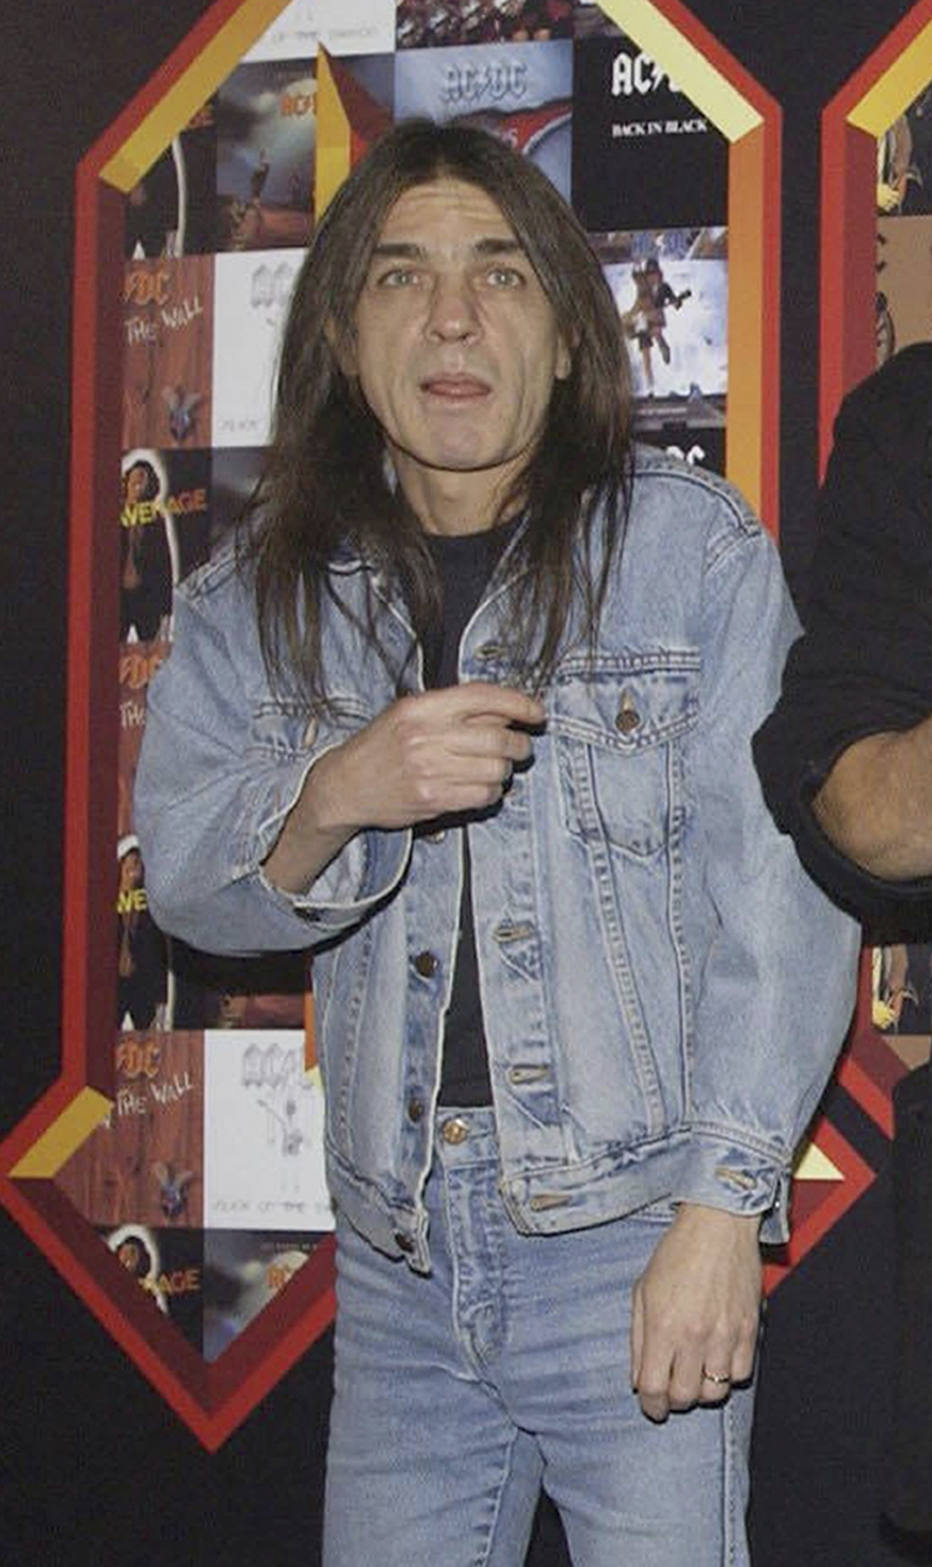 Em luto, mundo do rock lamenta a morte de Malcolm Young